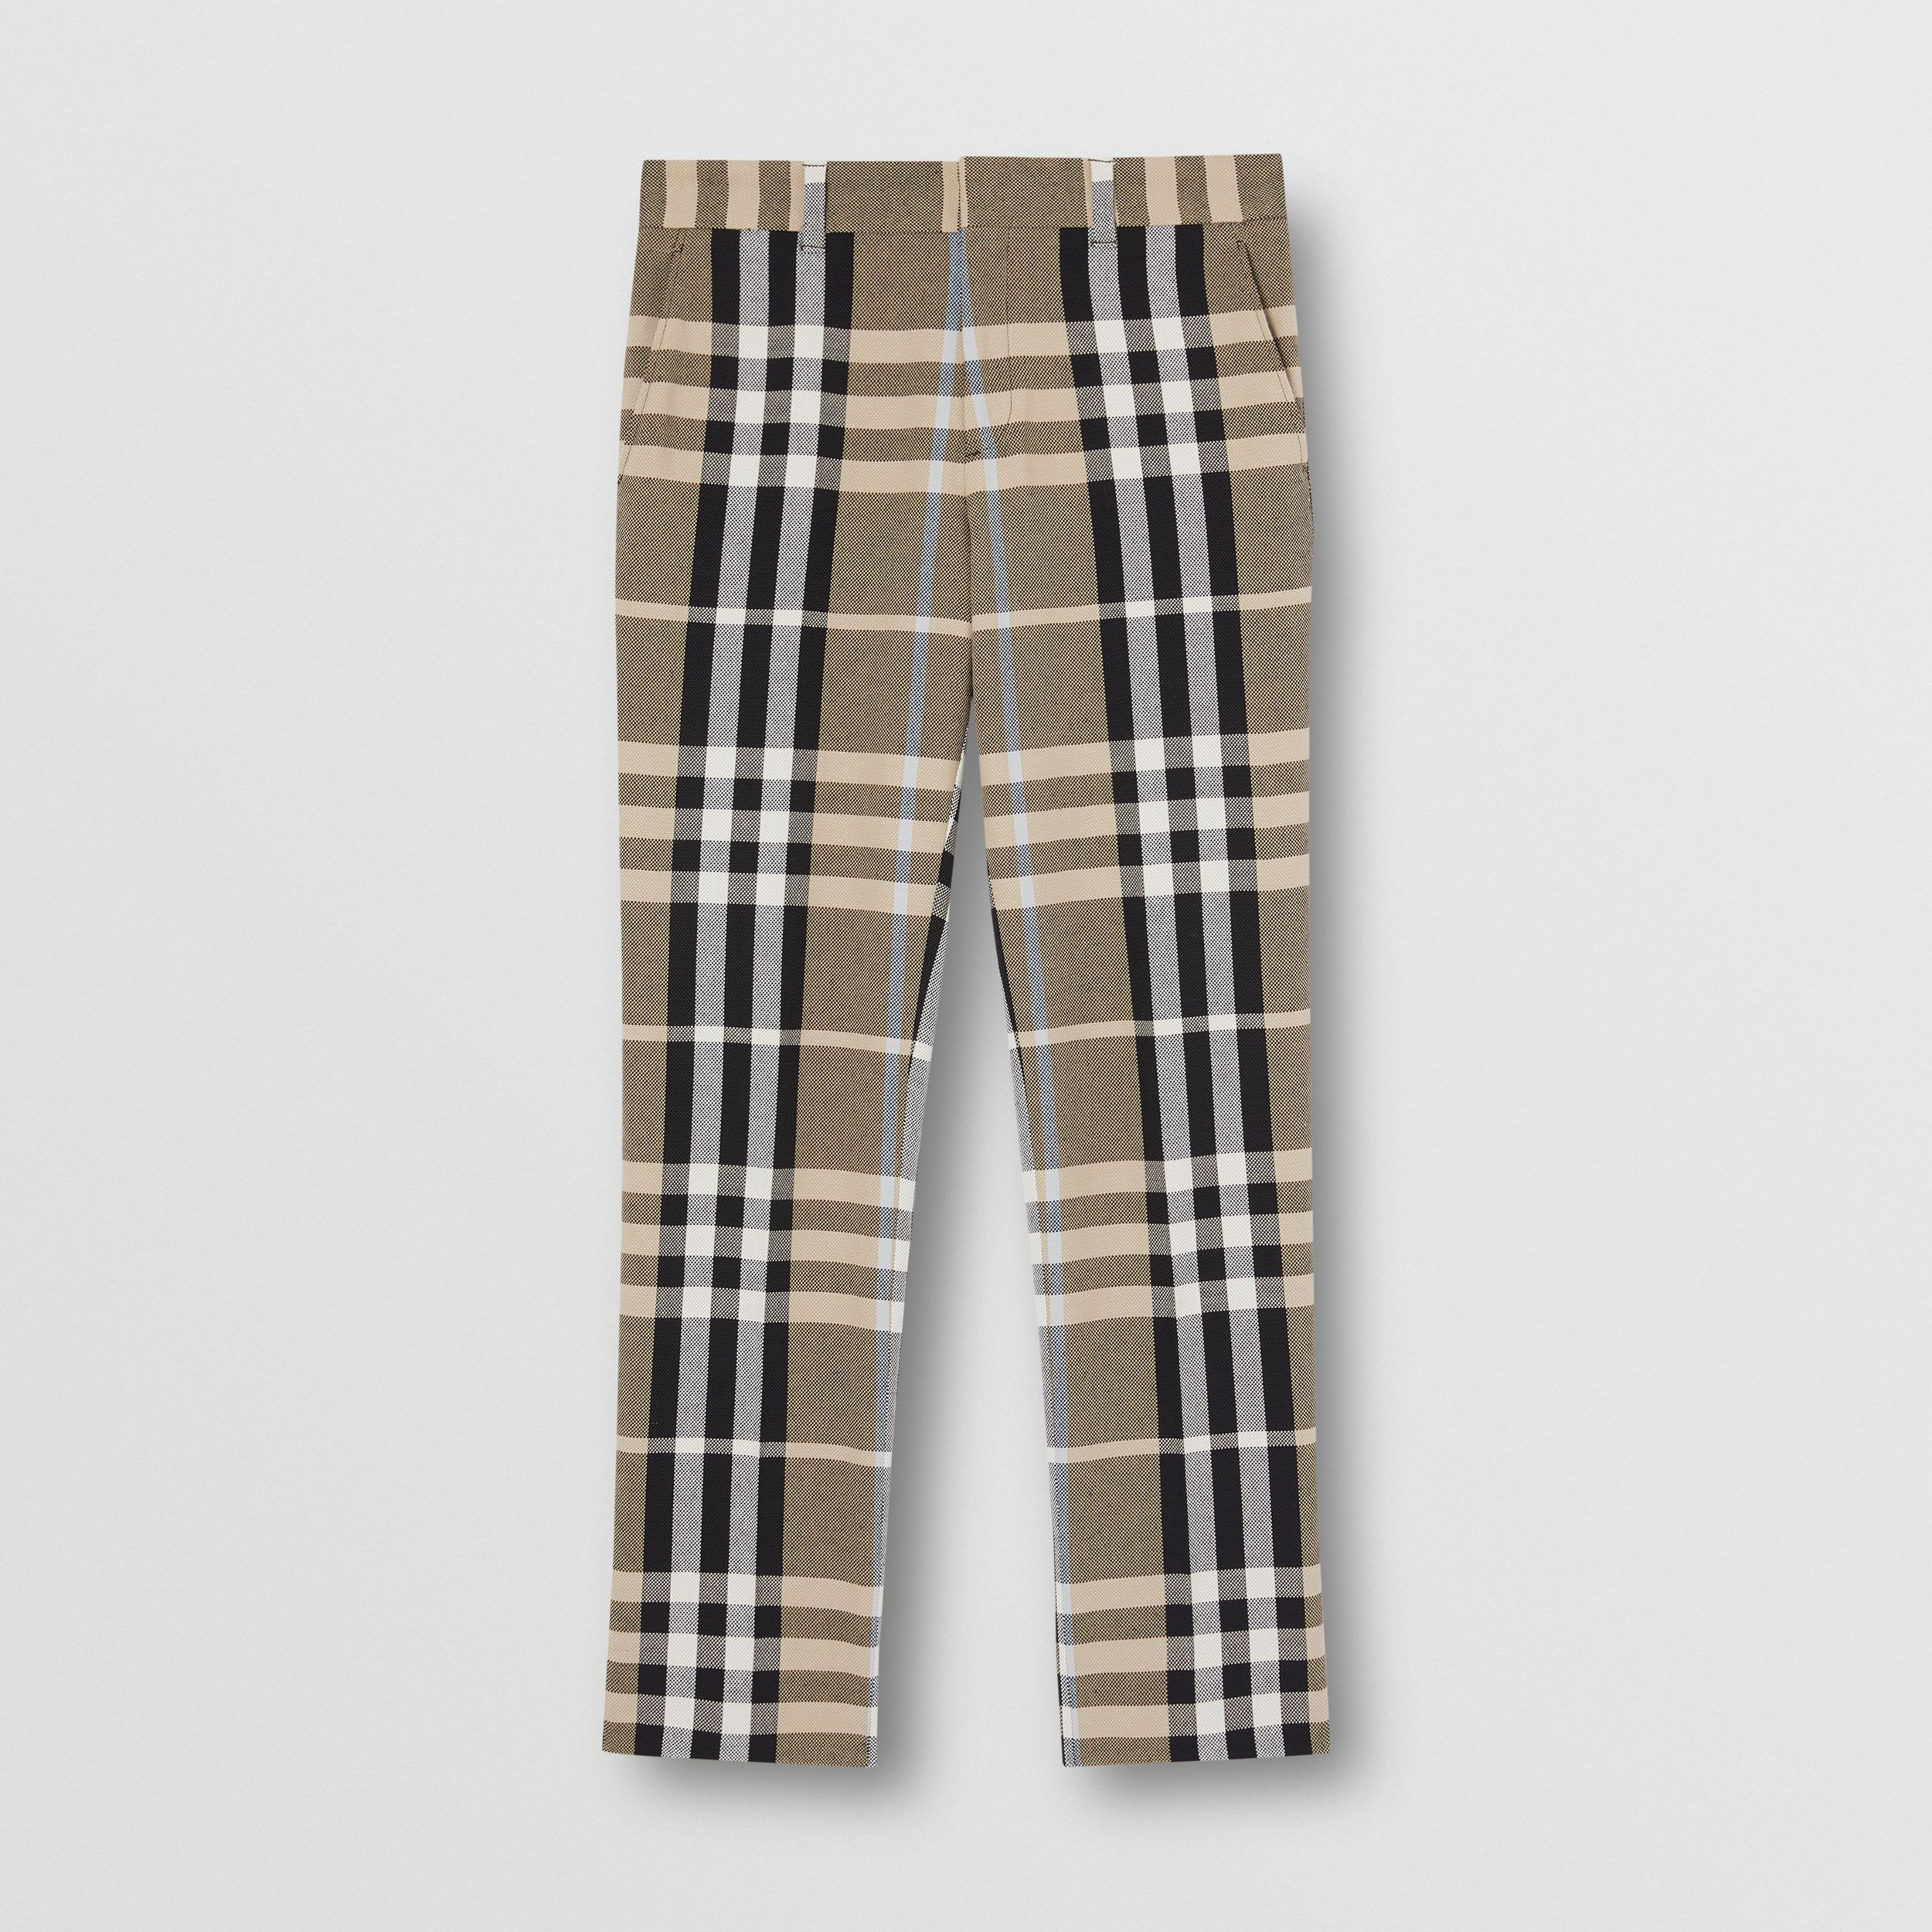 Slim Fit Check Technical Cotton Tailored Trousers in Dusty Sand - Men | Burberry - 4